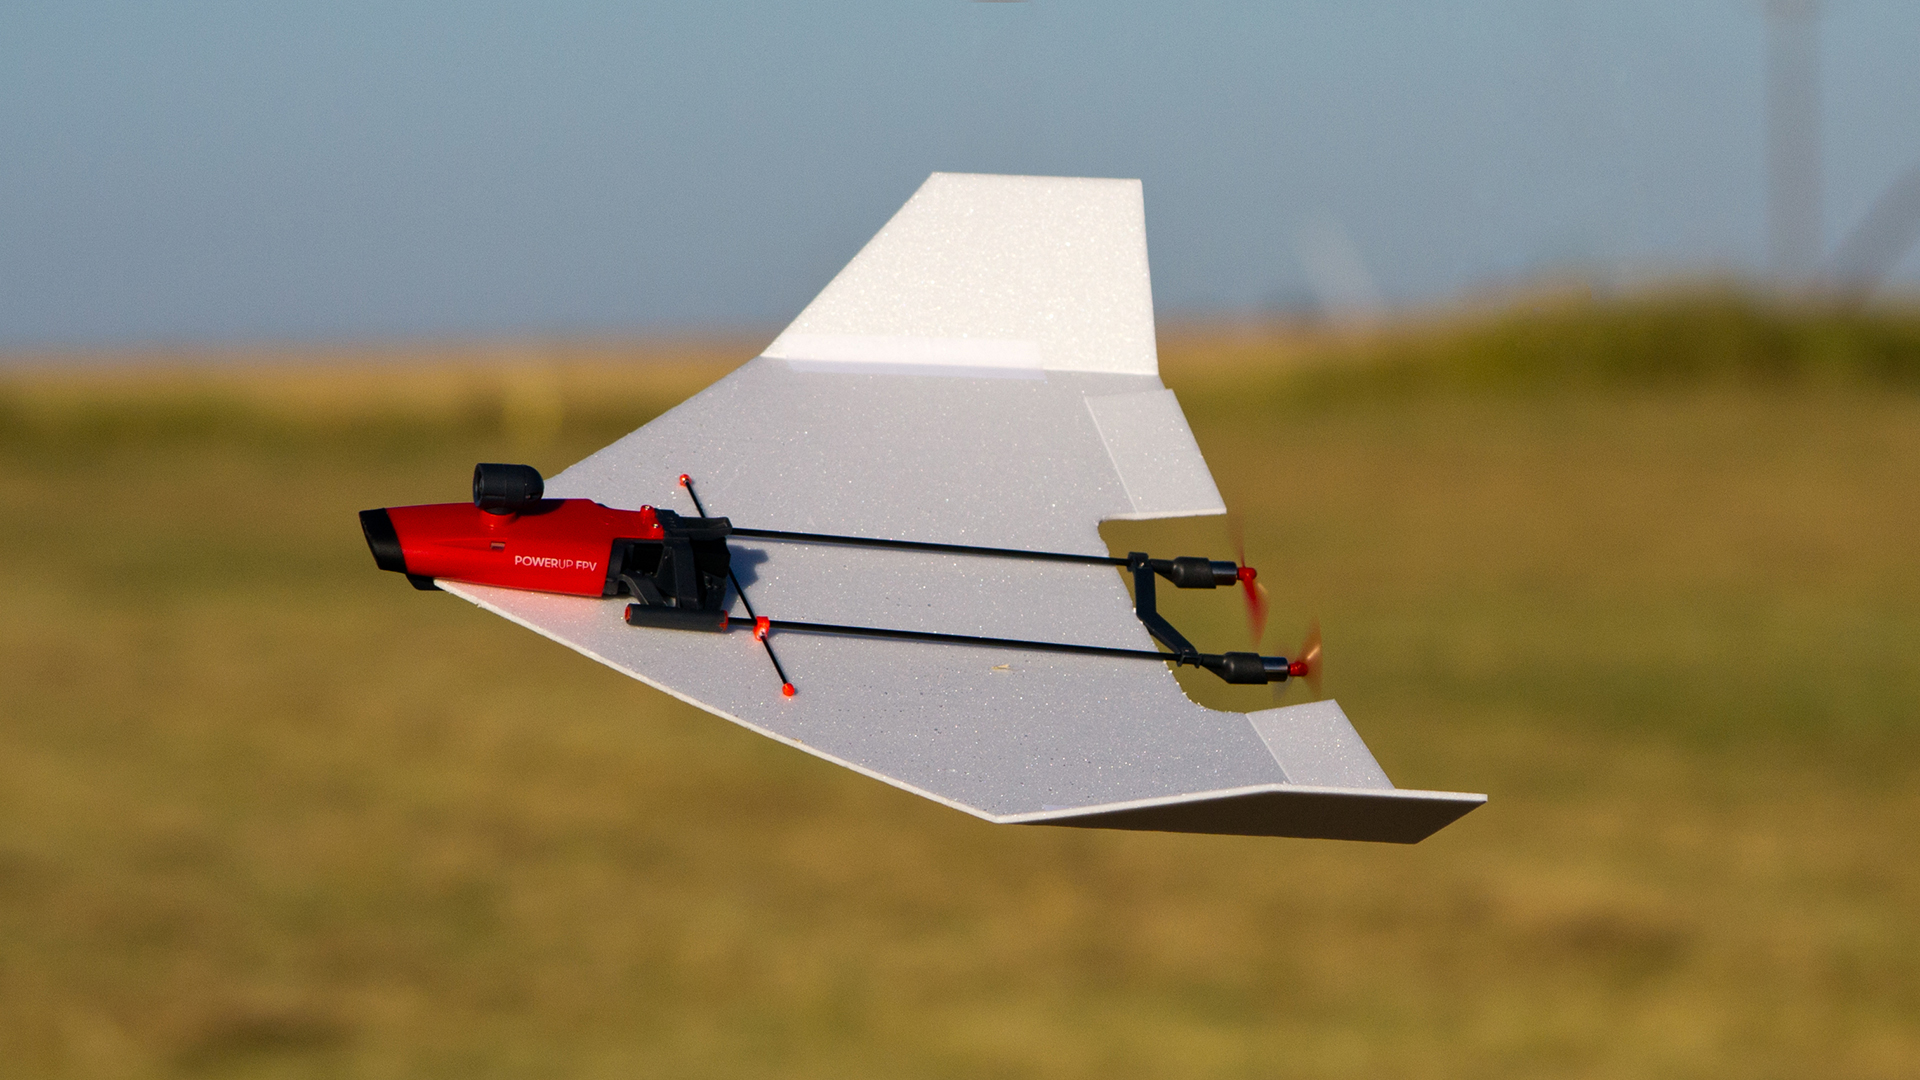 Tested: PowerUp FPV RC Paper Airplane - Tested